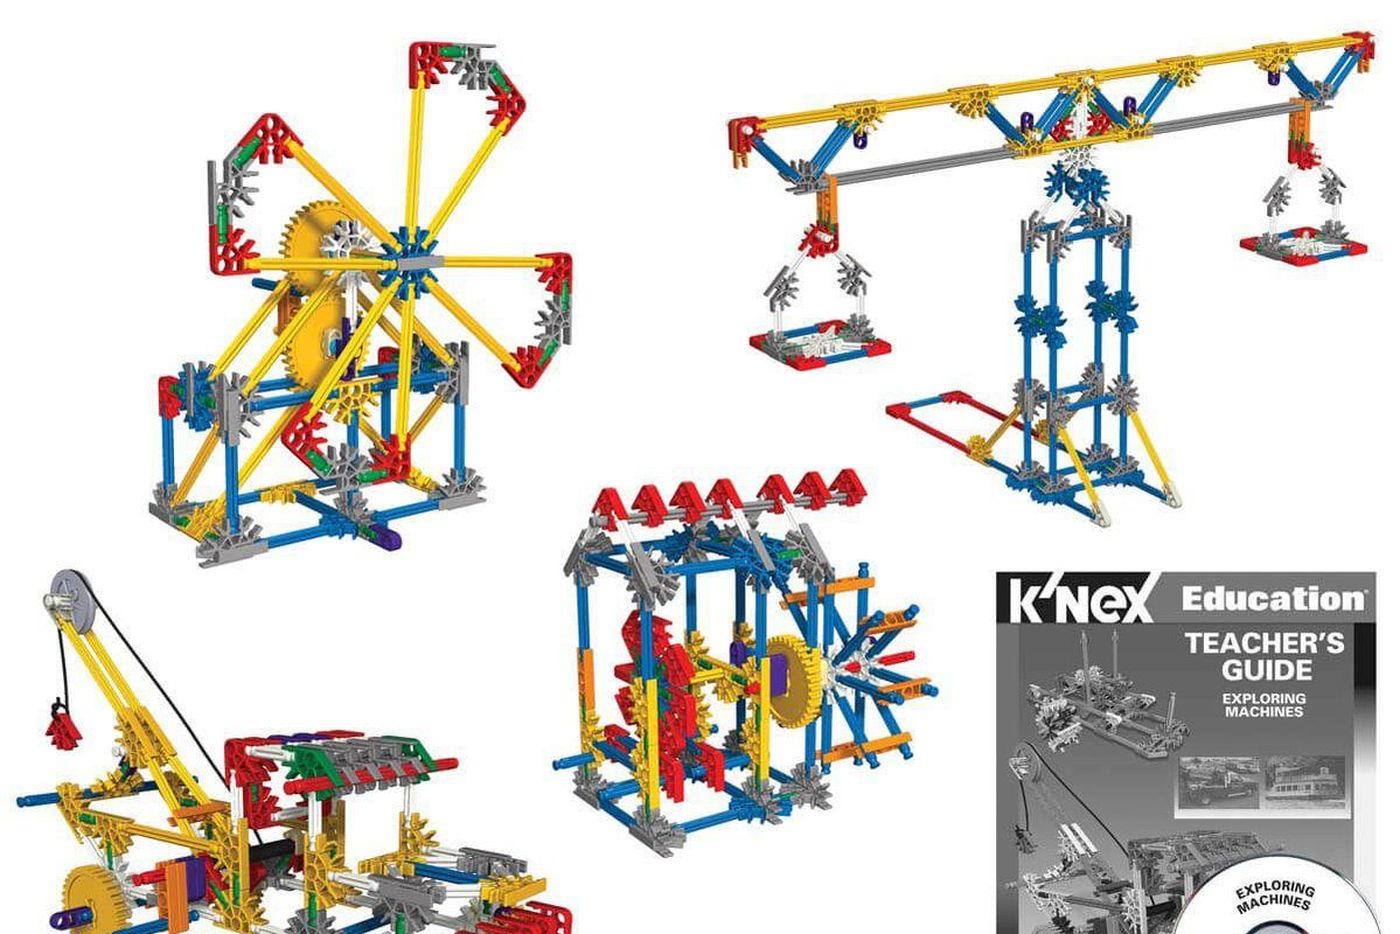 K'nex construction toy maker sold to Florida firm by lender PNC